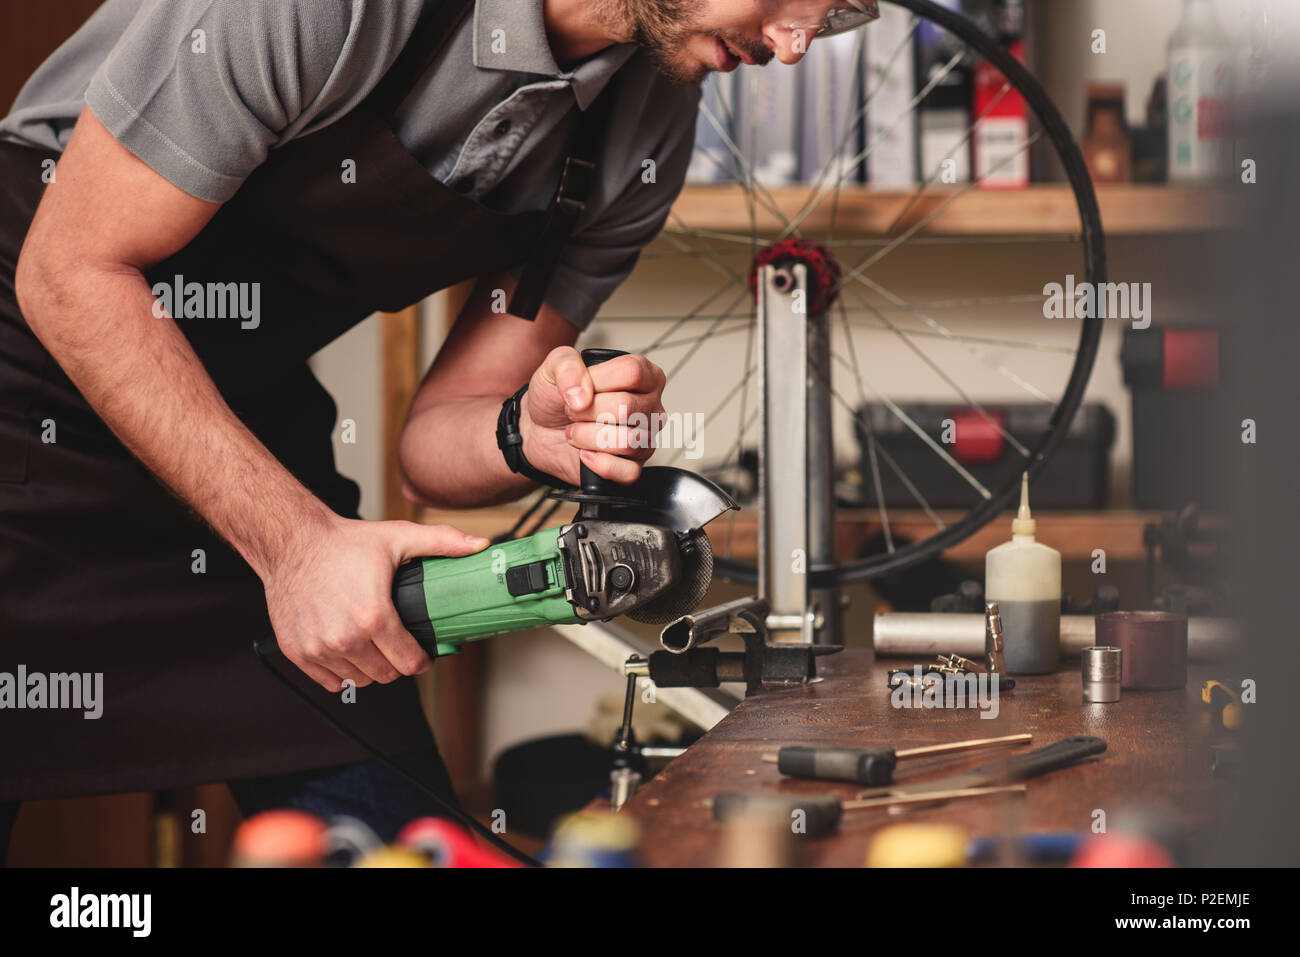 cropped shot of young worker cutting metal with angle grinder in workshop - Stock Image